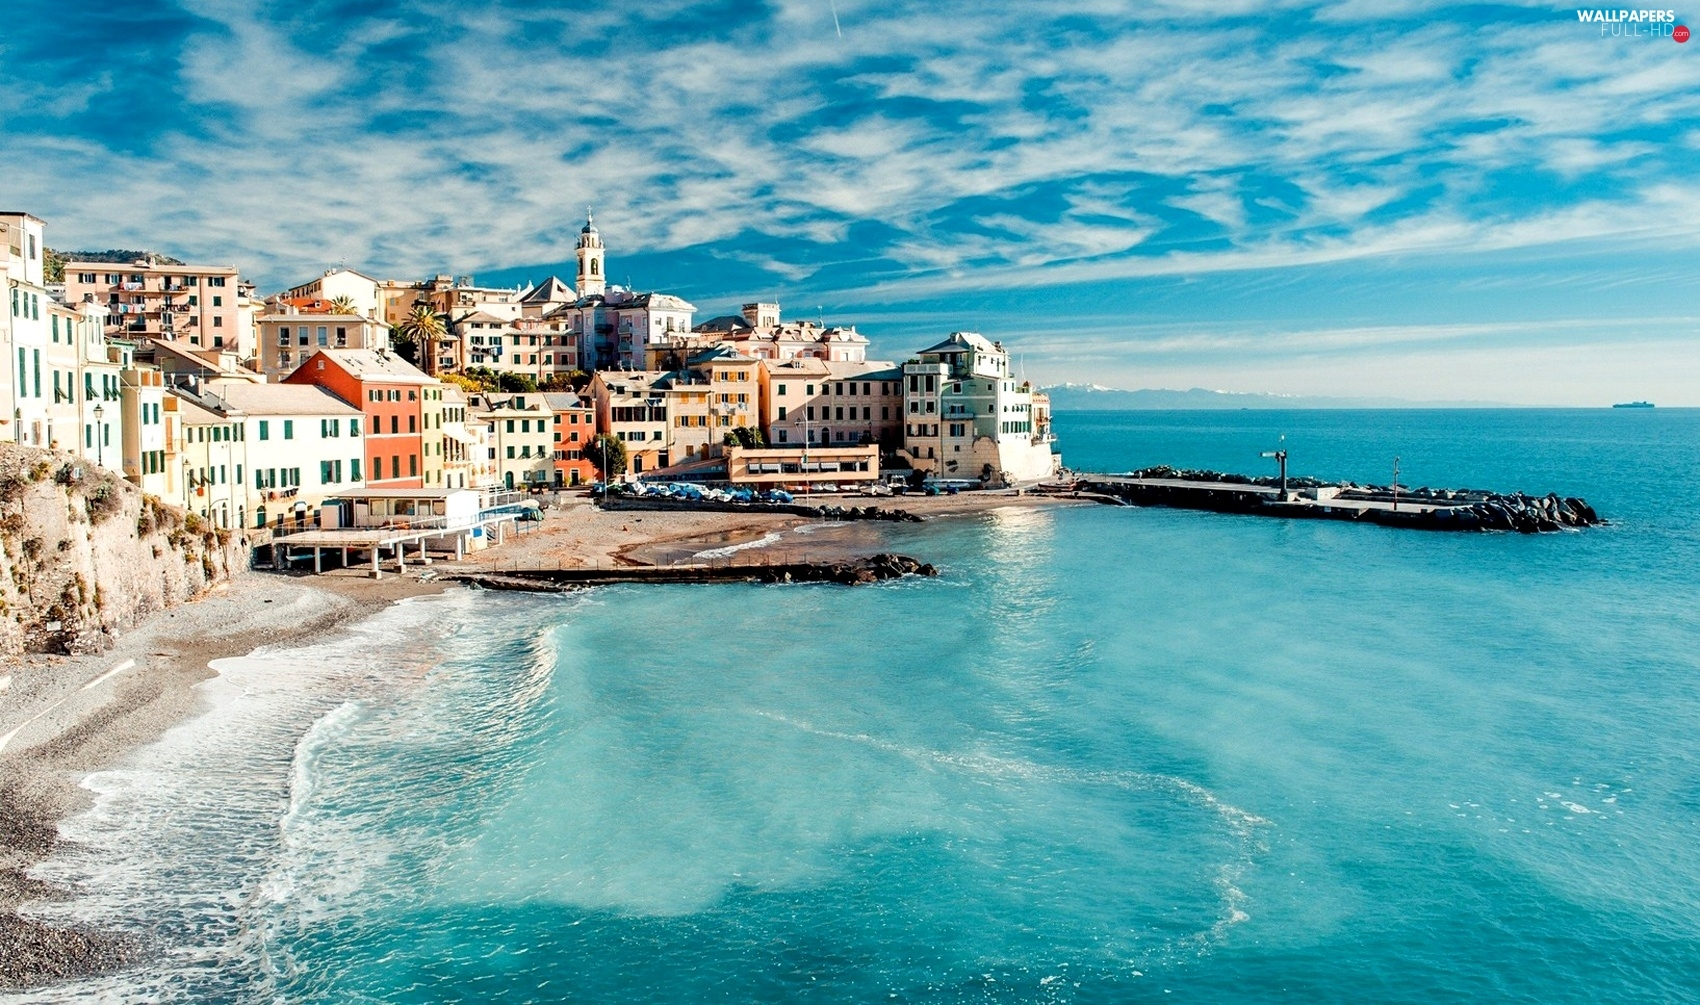 Houses, Town, Italy, sea